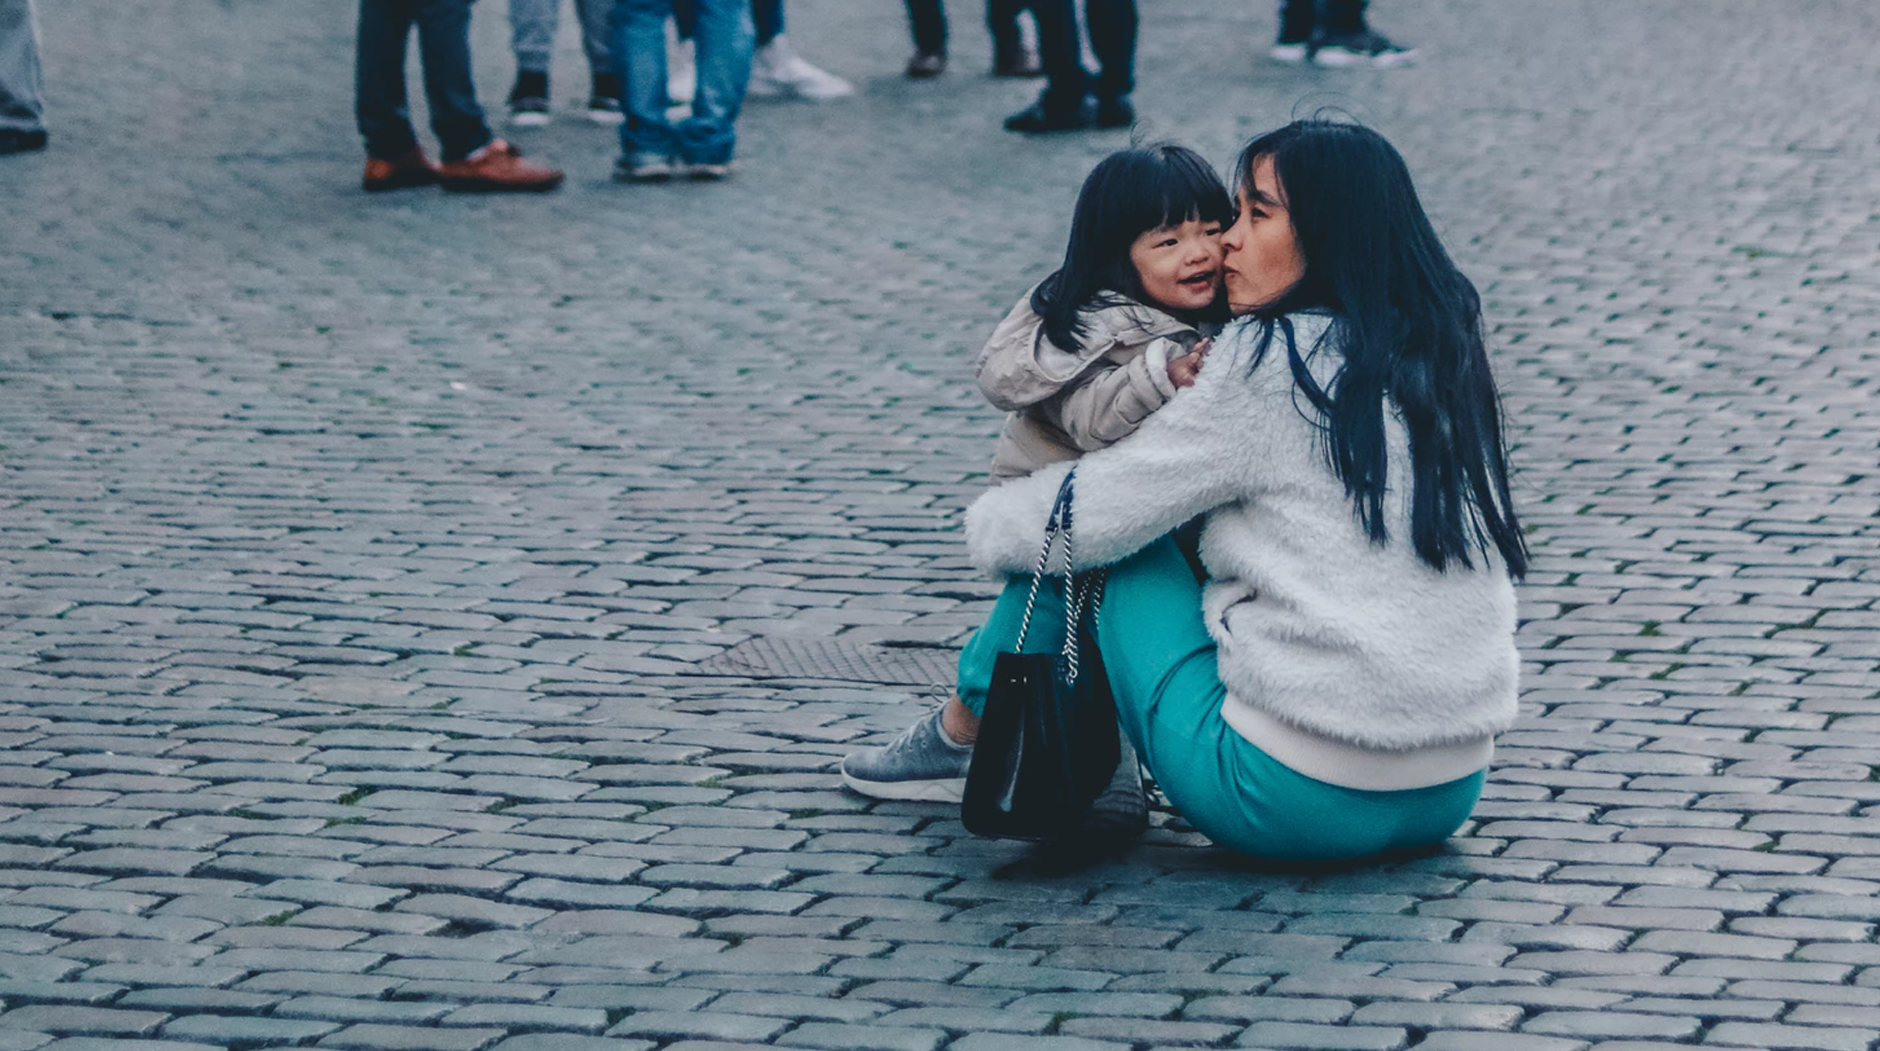 Do you need help Post Image woman kissing girl while sitting near building - Child Welfare Tips: What Childcare Providers and Parents Should Know